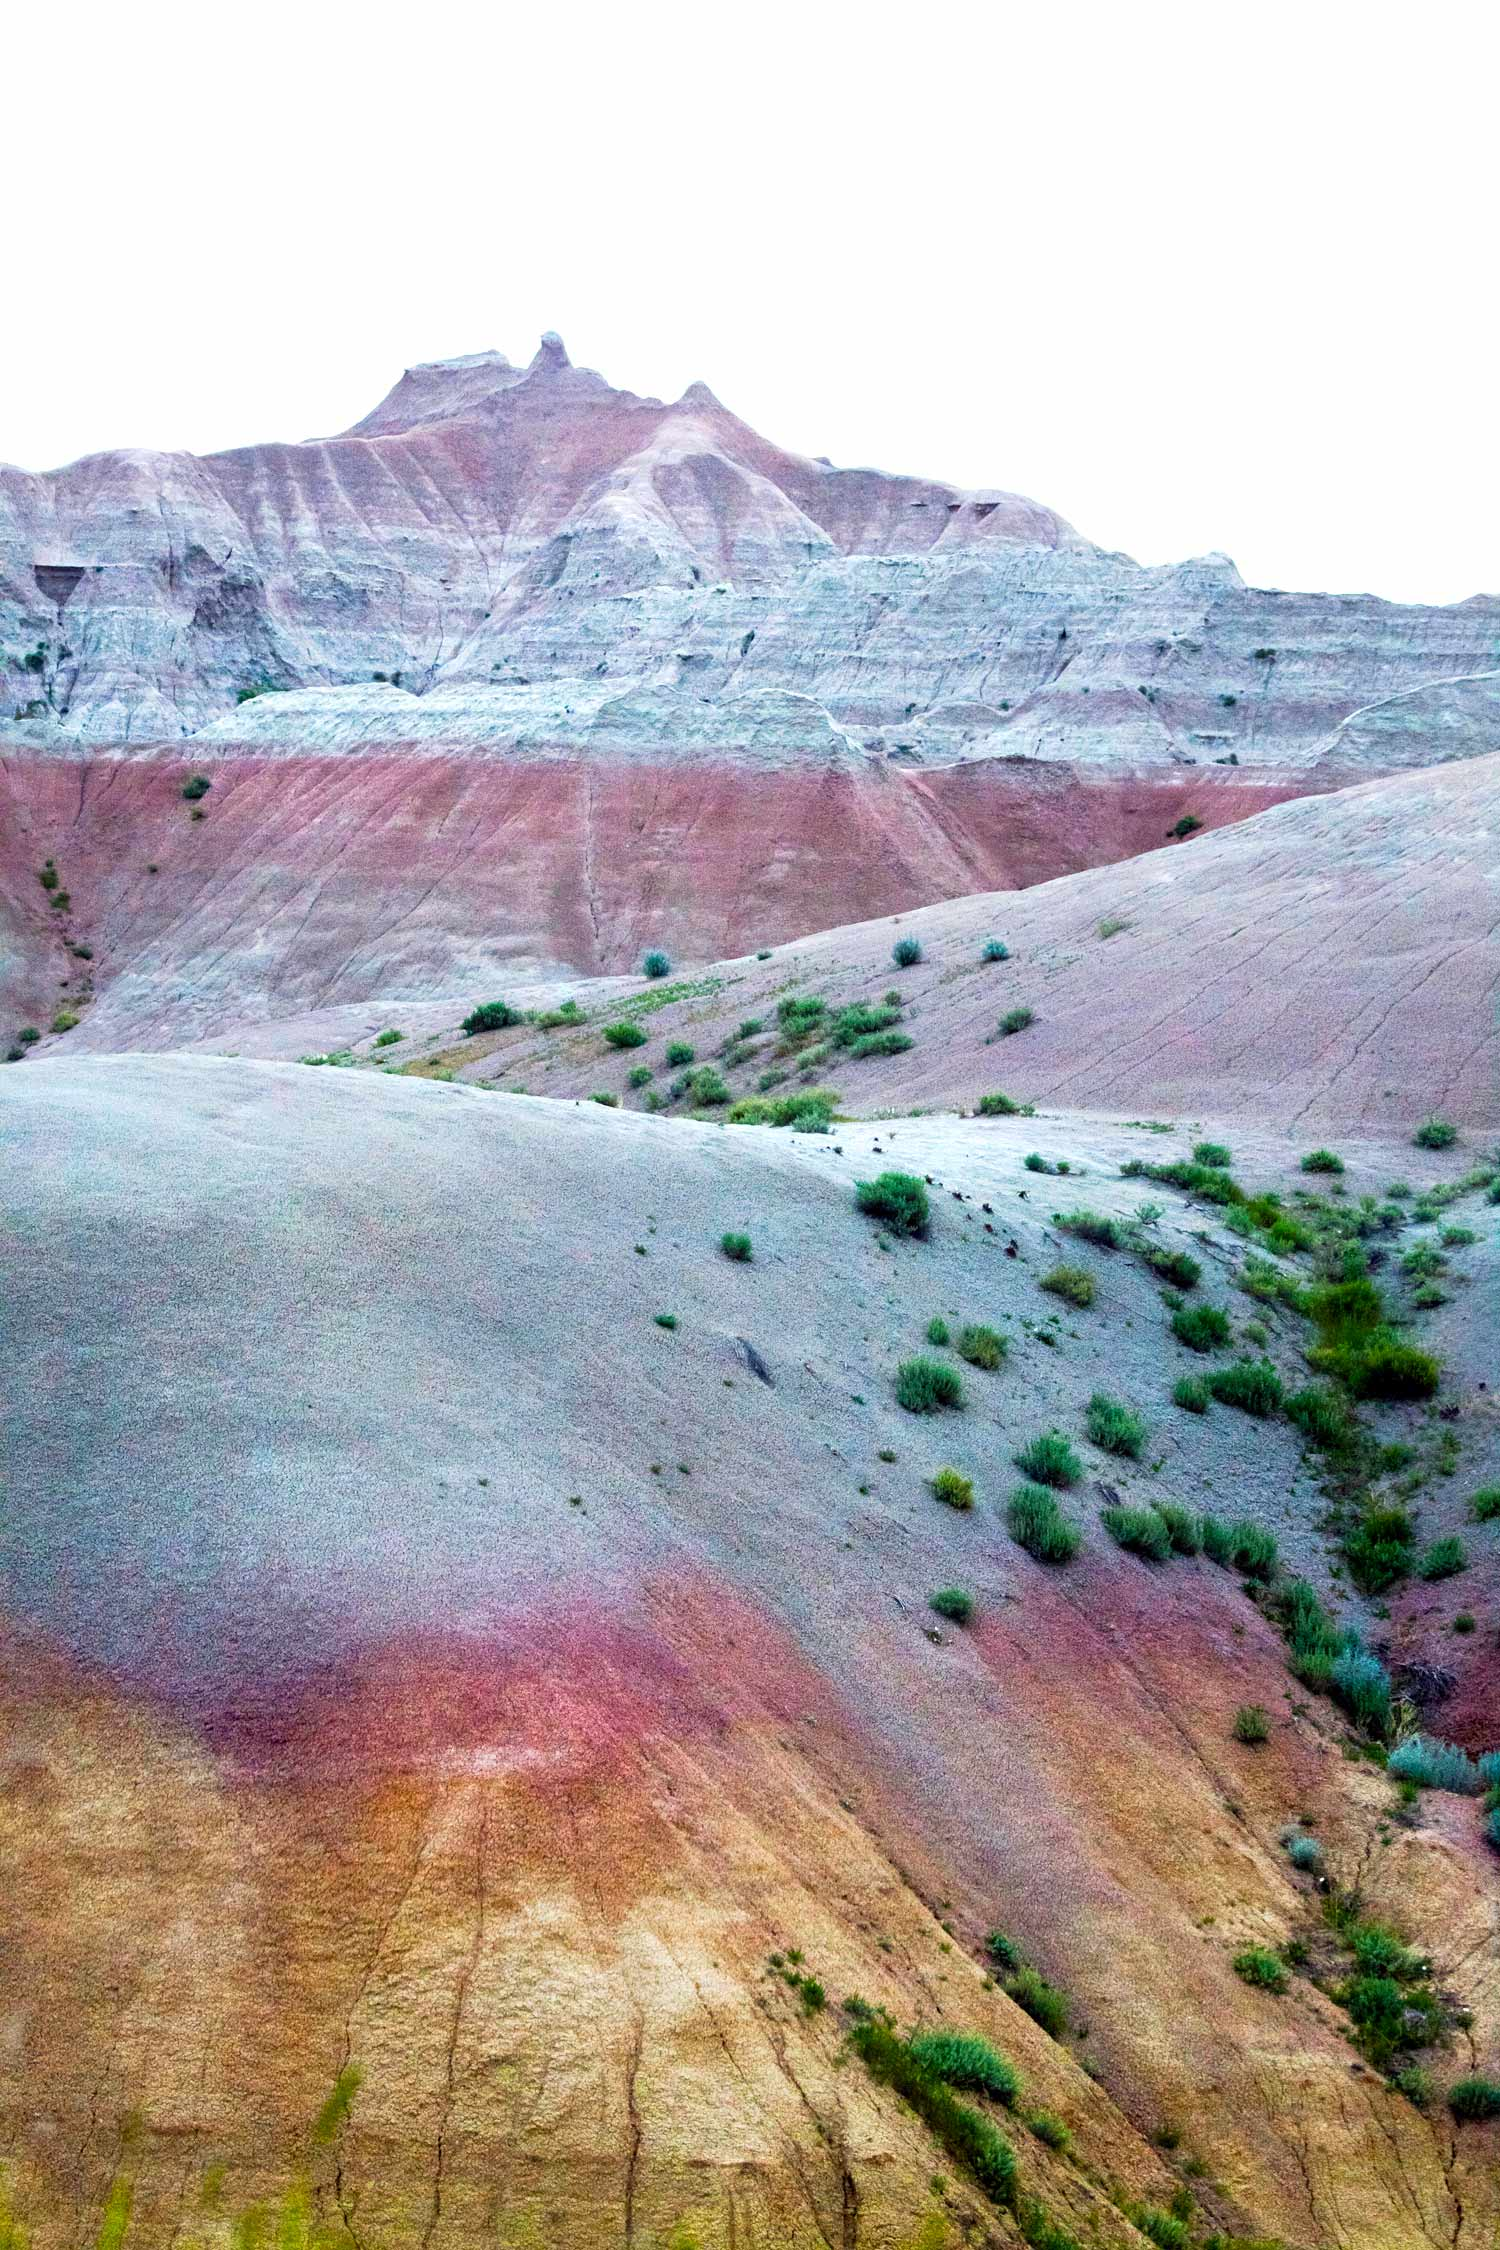 Badlands-SpencerMickaPhotography.jpg